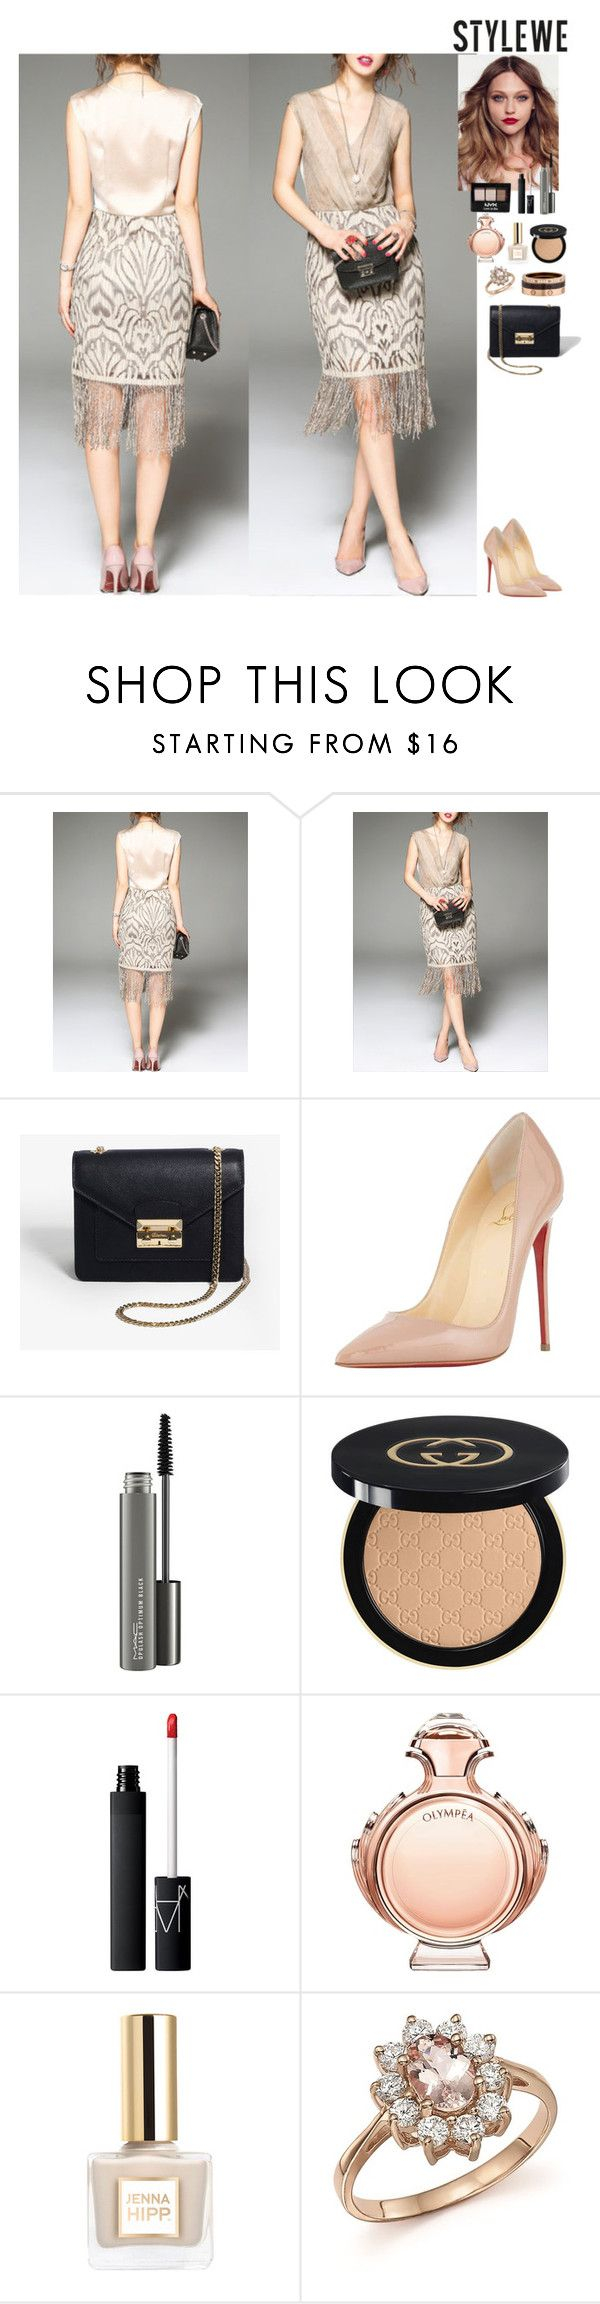 Event StyleWe by eliza-redkina on Polyvore featuring мода, Christian Louboutin, Cartier, Bloomingdale's, Gucci, NARS Cosmetics, MAC Cosmetics, Paco Rabanne and NYX